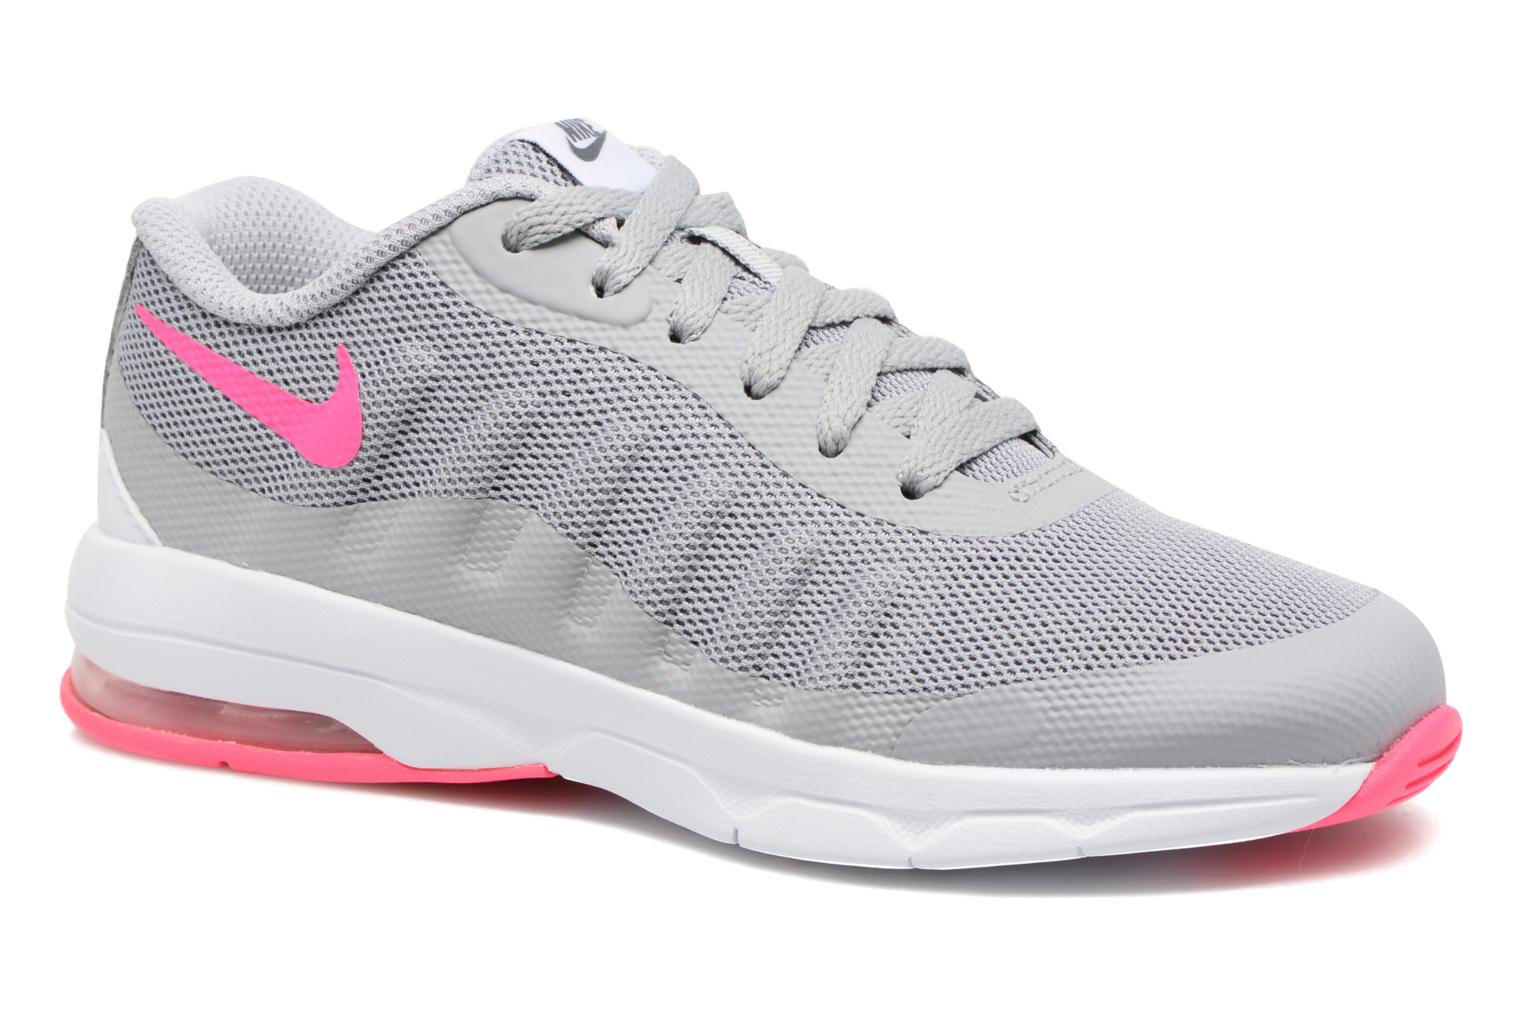 Nike Air Max Invigor (Ps) Wolf Grey/Hyper Pink-Cool Grey-White